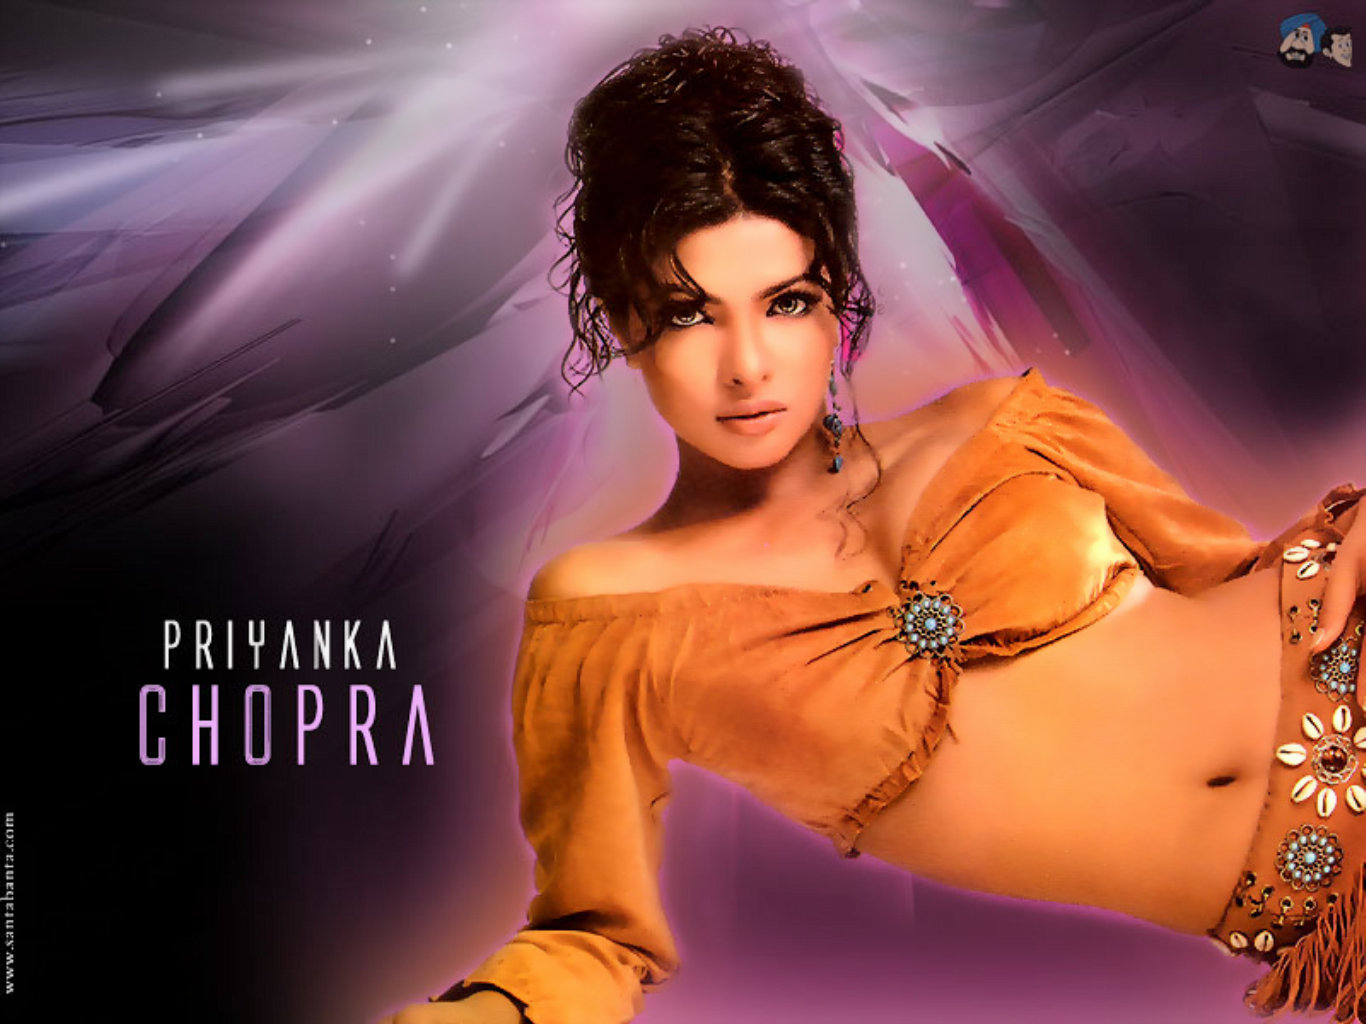 Priyanka Chopra Super Hot Bikini HD Wallpaper